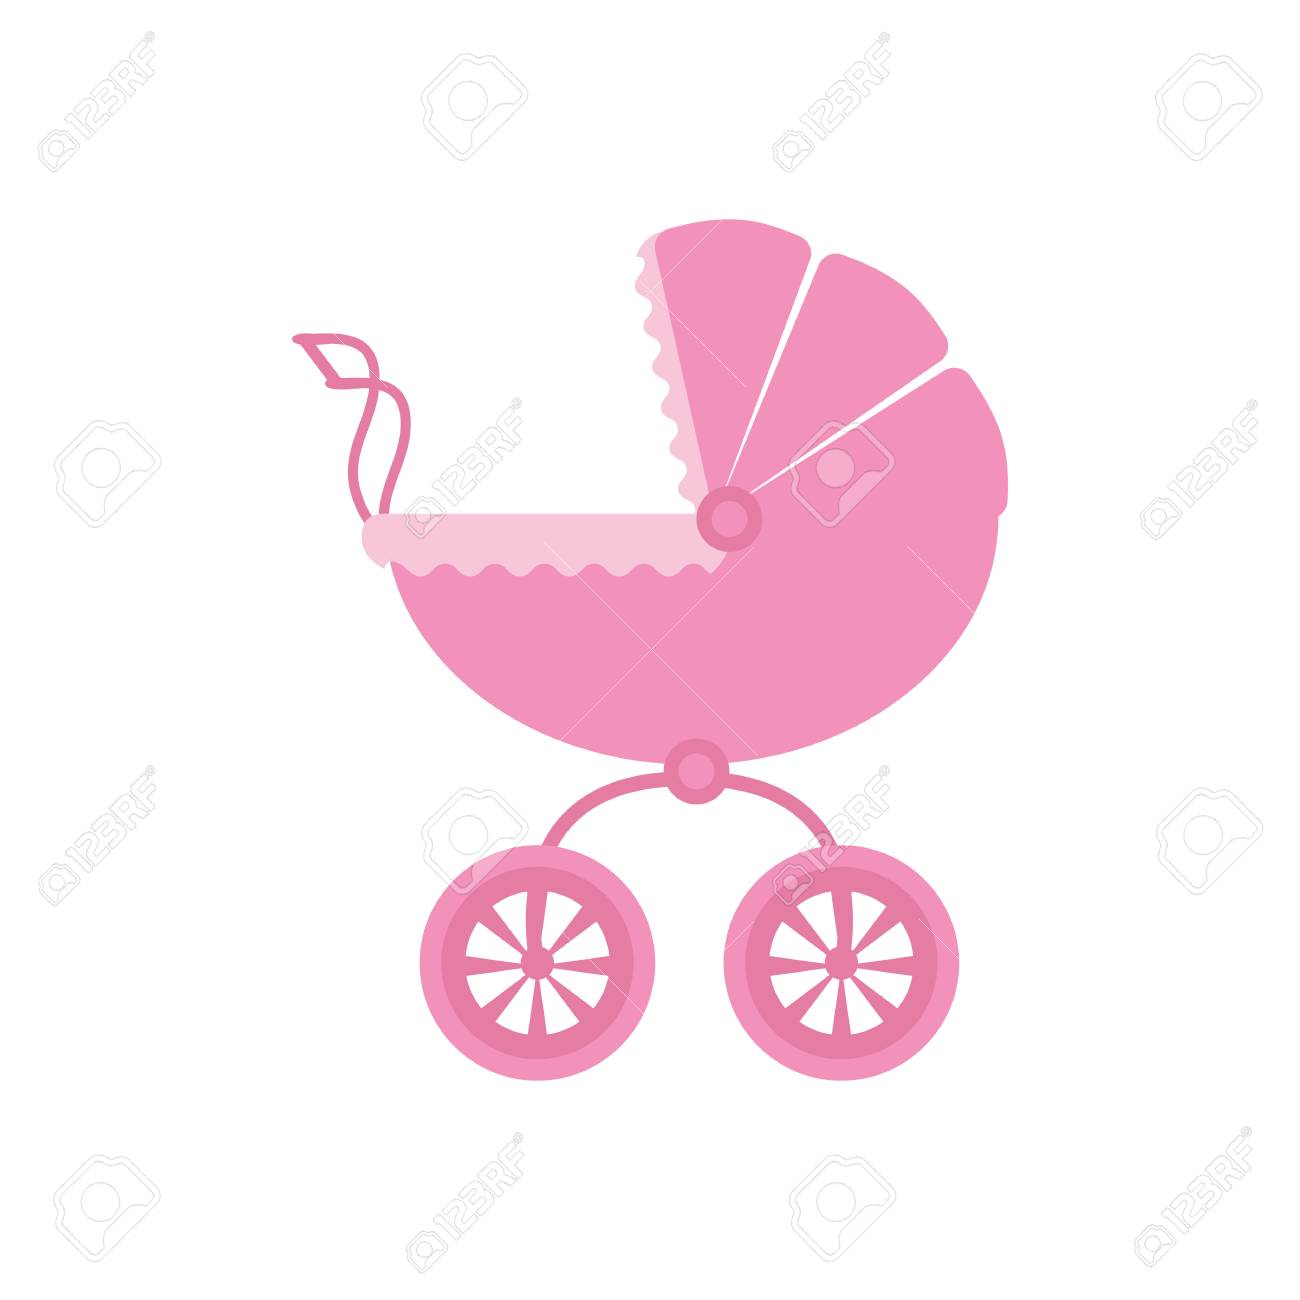 Vector Illustration Of A Baby Stroller For A Girl On A White ...